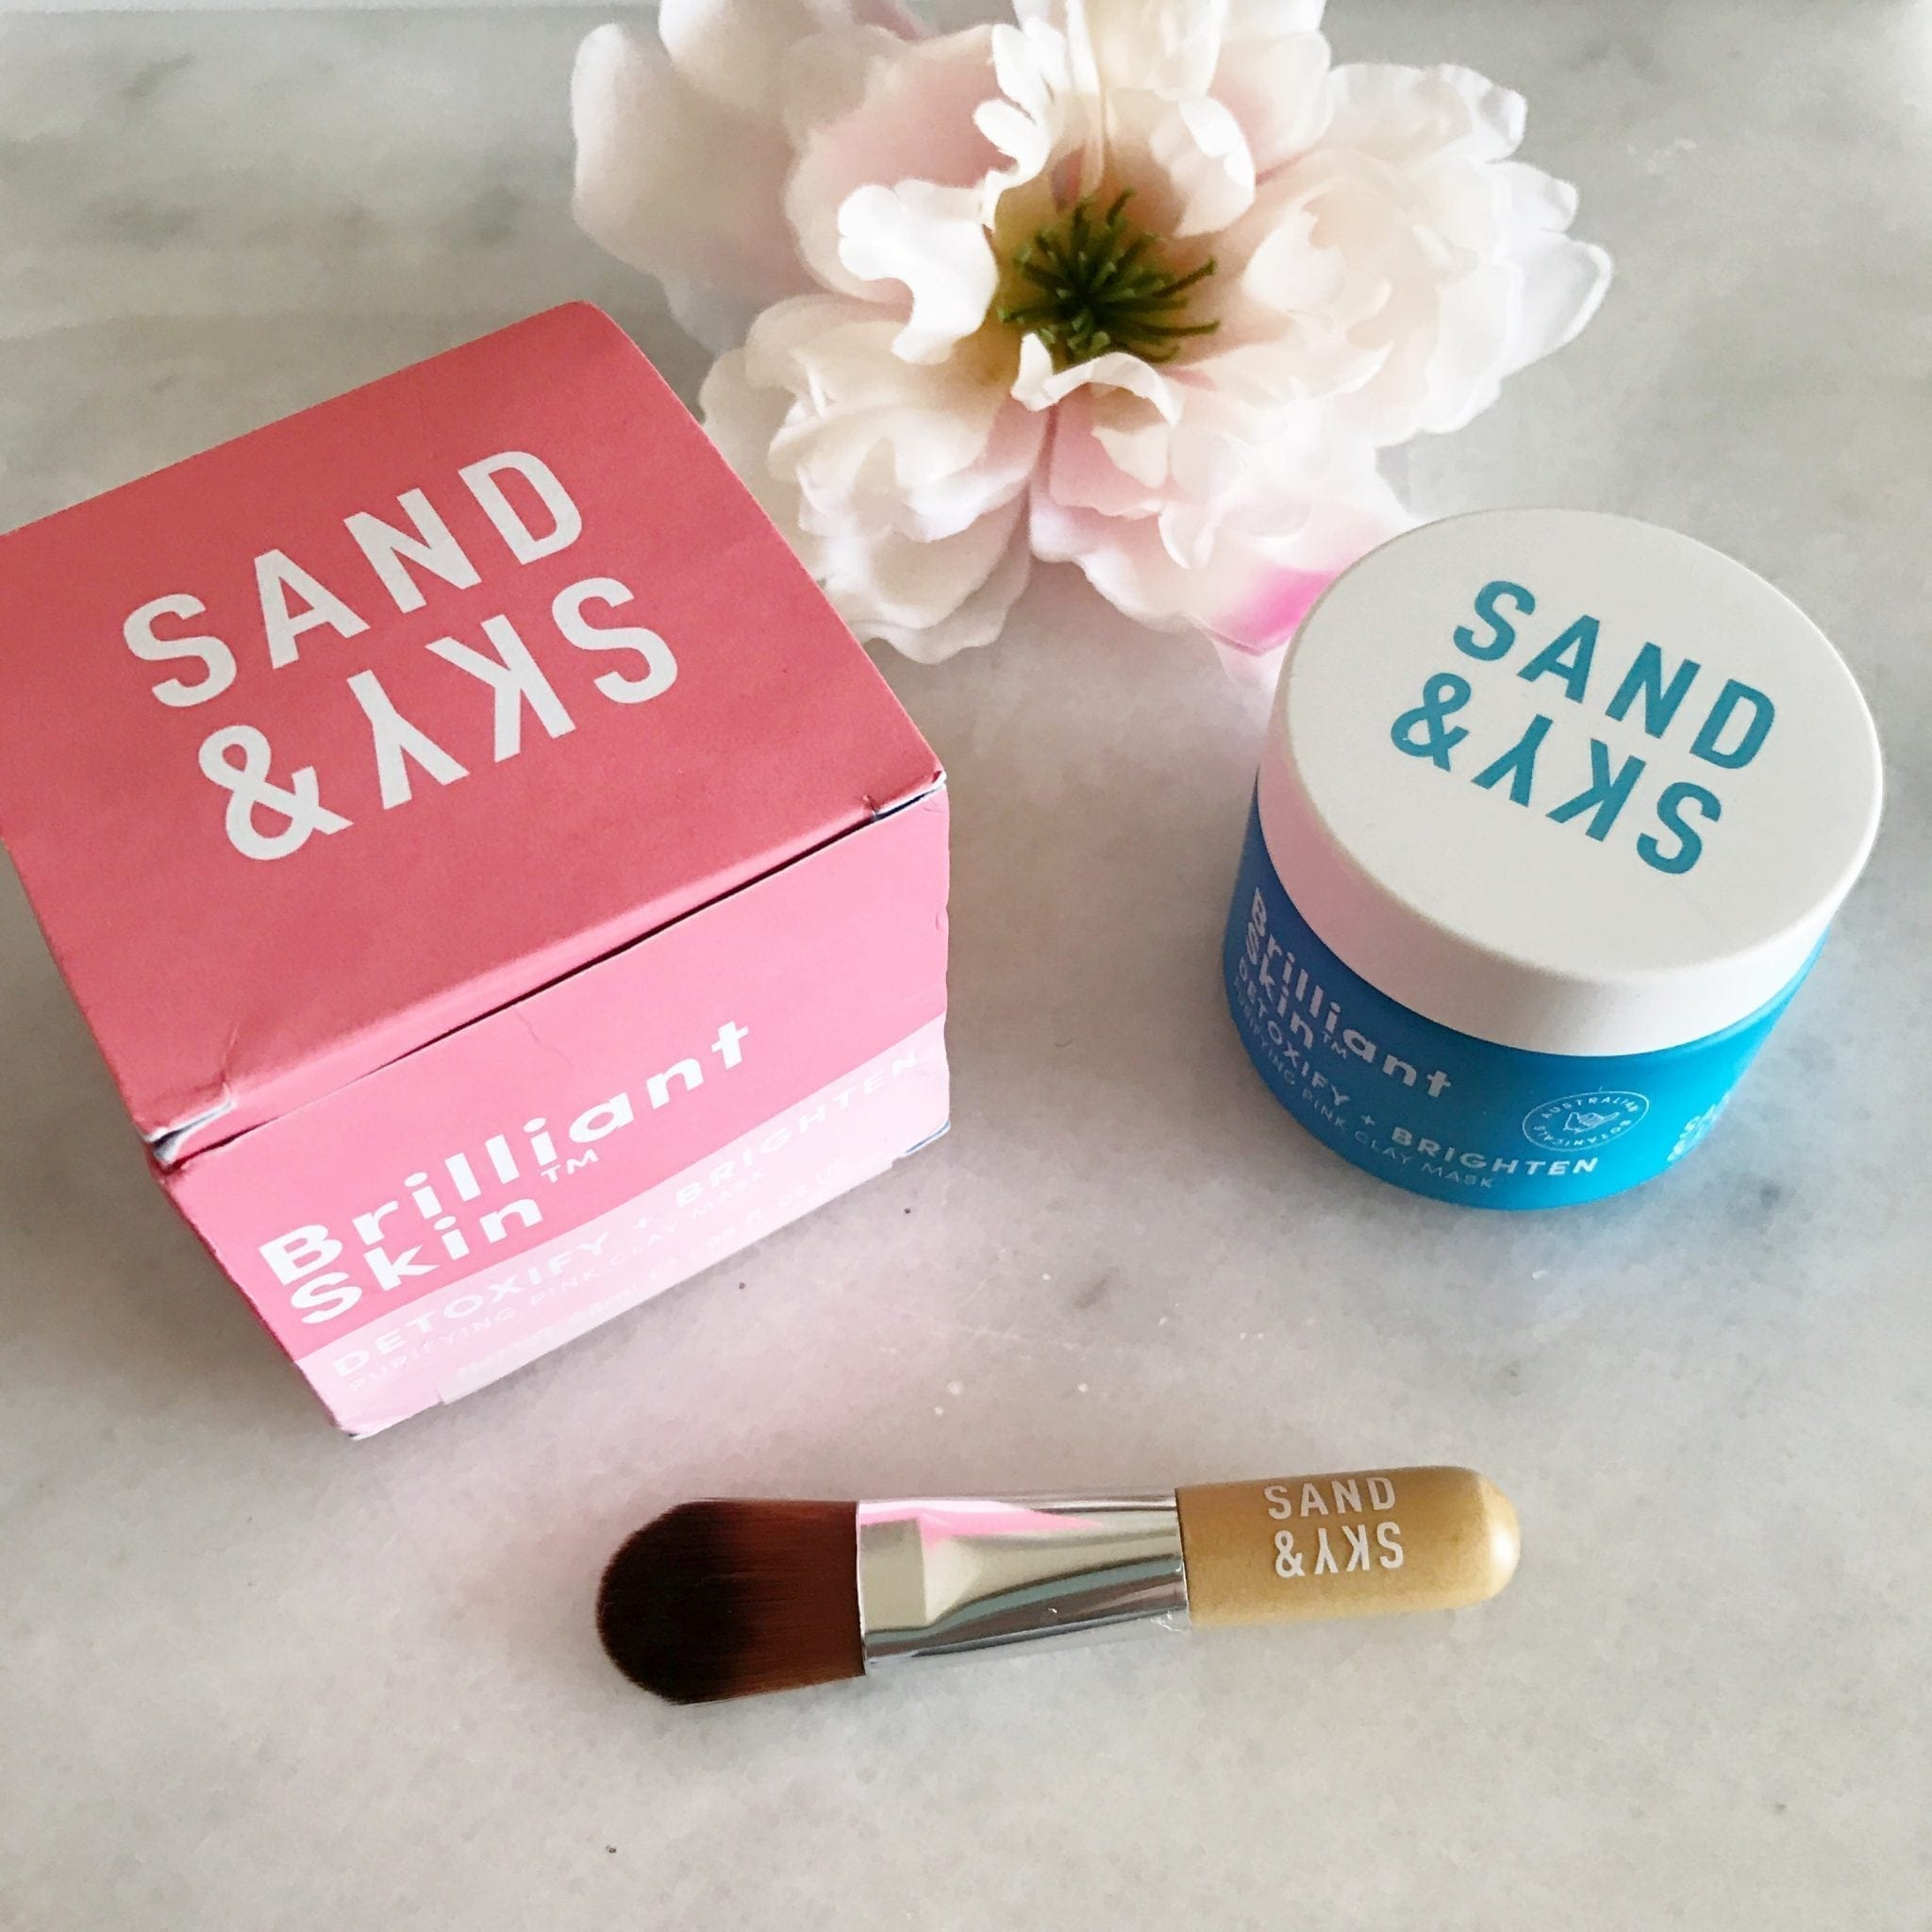 Sand & Sky Detoxifying + Brighten Clay Mask